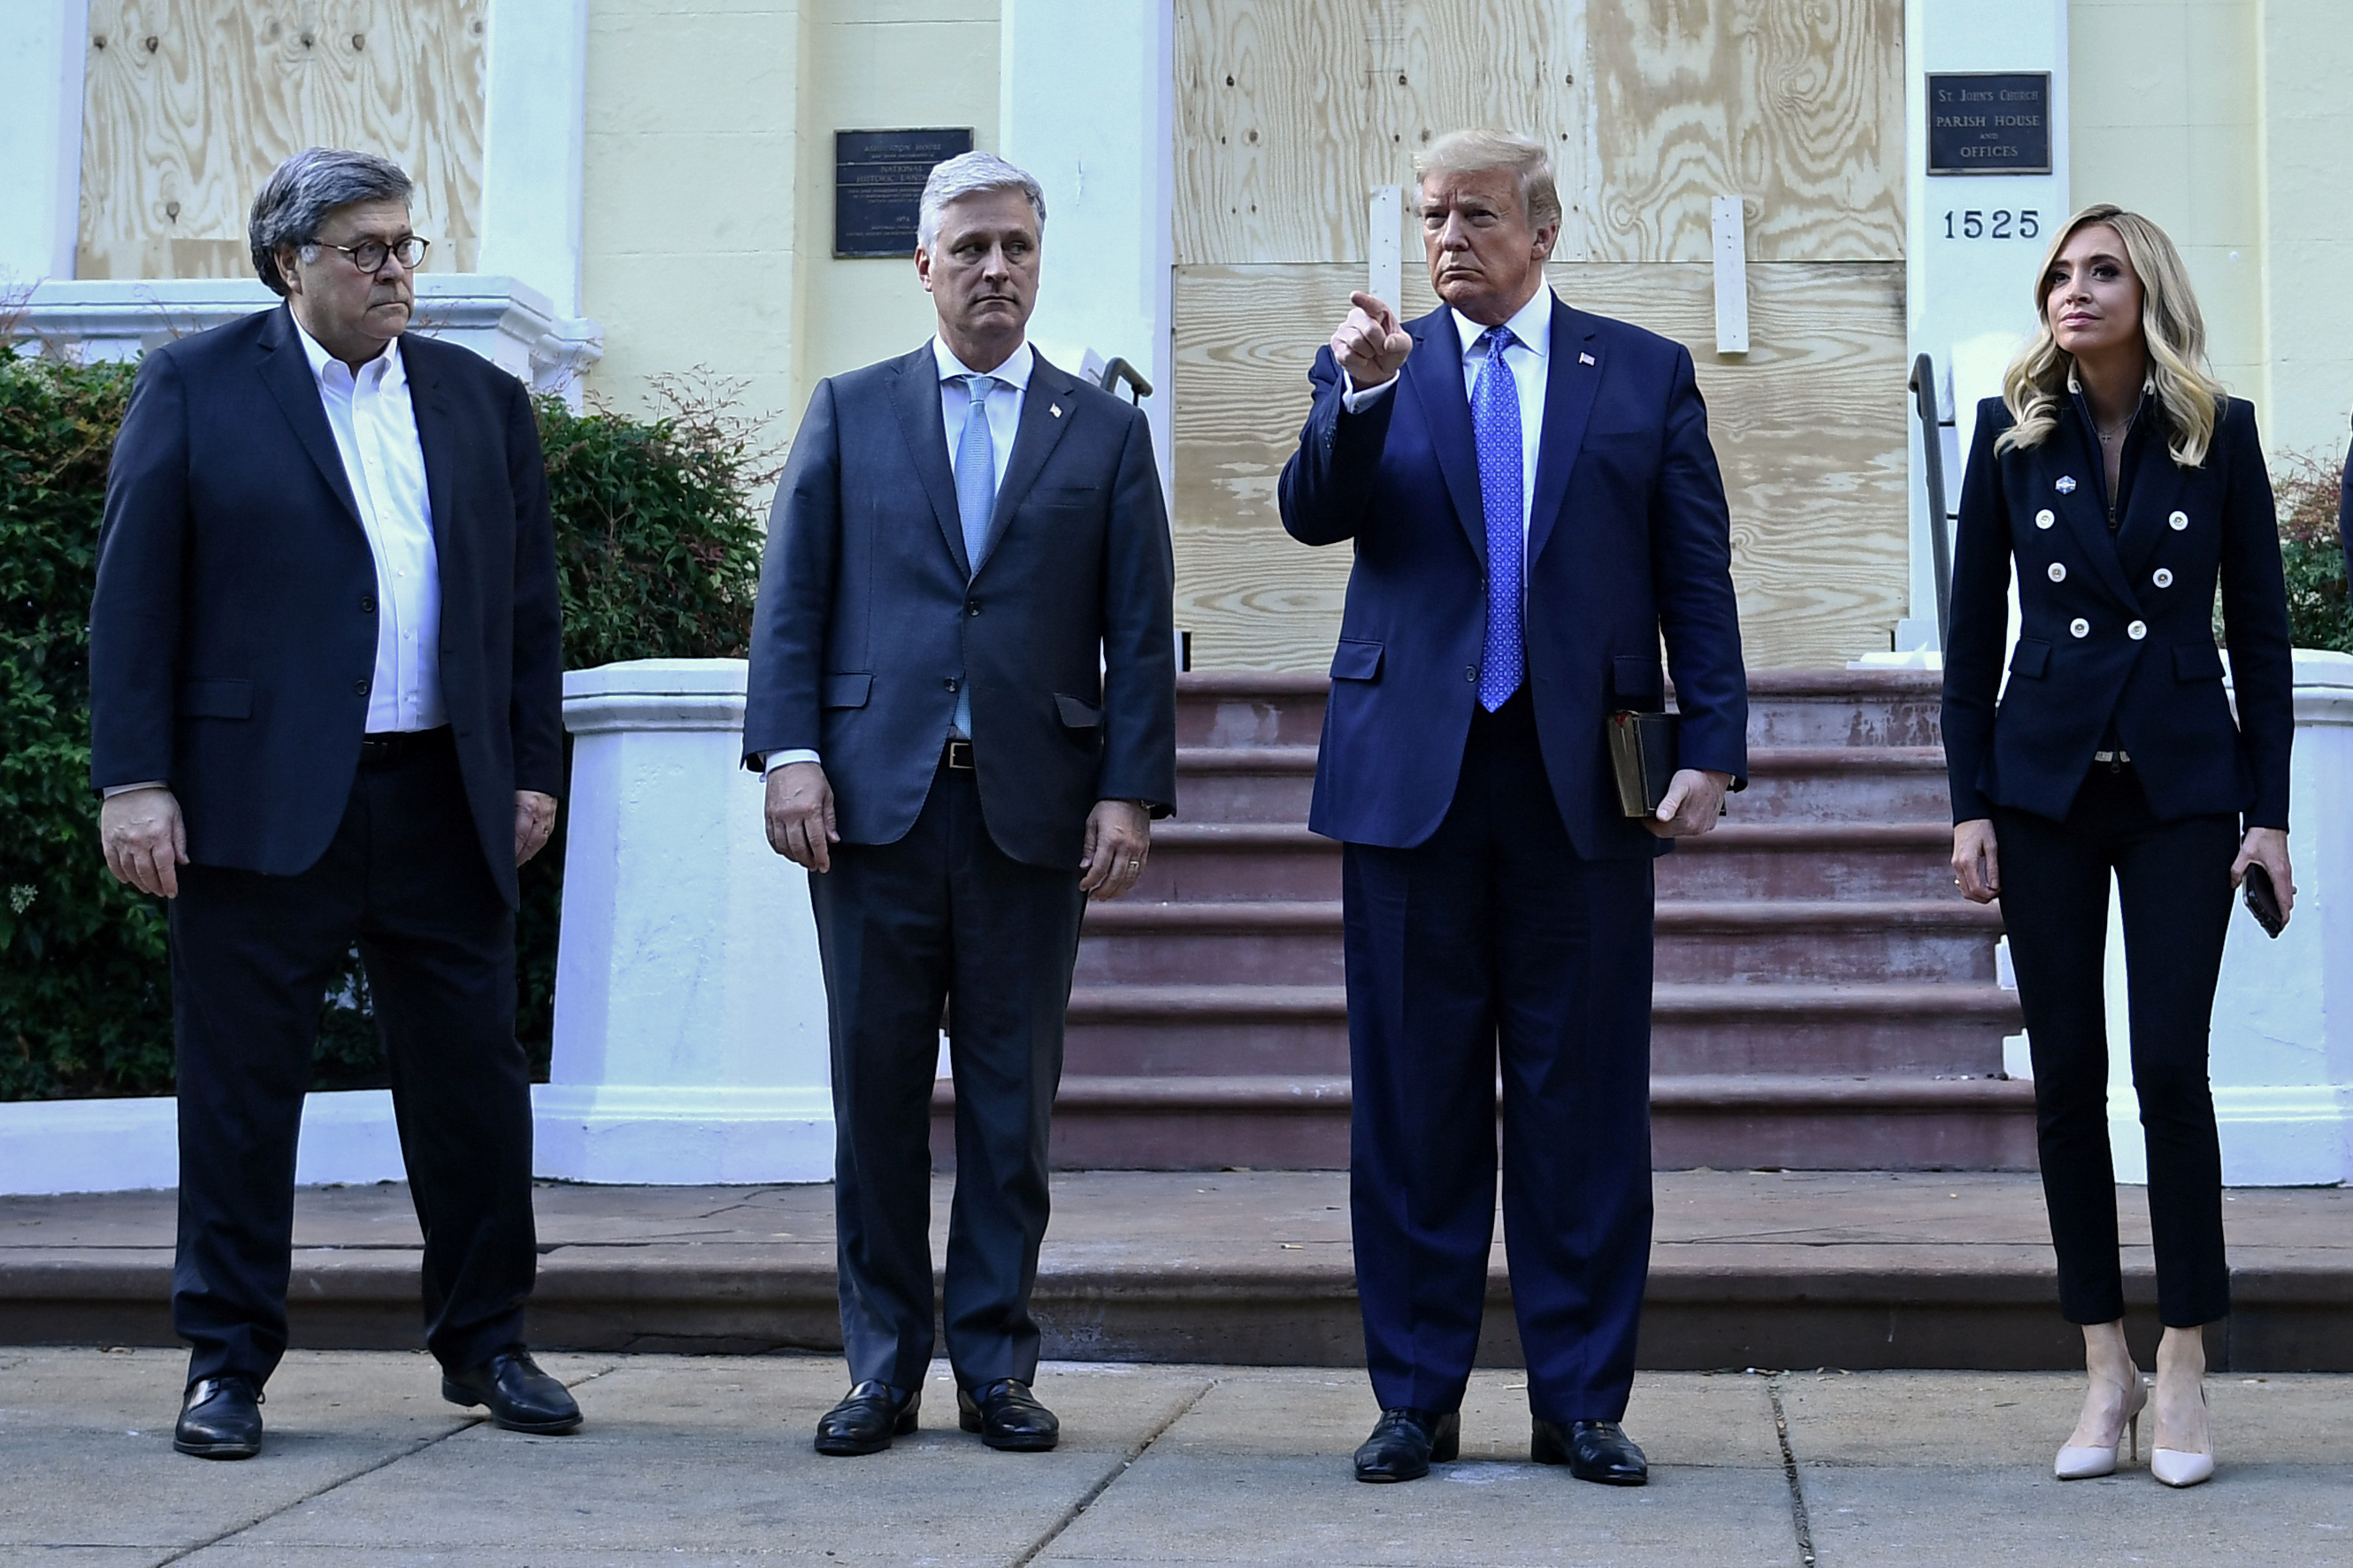 US President Donald Trump holds up a Bible as he gestures, alongside US Attorney General William Barr (L), White House national security adviser Robert O'Brien (2nd-L) and White House press secretary Kayleigh McEnany, outside of St John's Episcopal church across Lafayette Park in Washington, DC on June 1, 2020. - US President Donald Trump was due to make a televised address to the nation on Monday after days of anti-racism protests against police brutality that have erupted into violence. The White House announced that the president would make remarks imminently after he has been criticized for not publicly addressing in the crisis in recent days. (Photo by BRENDAN SMIALOWSKI/AFP via Getty Images)